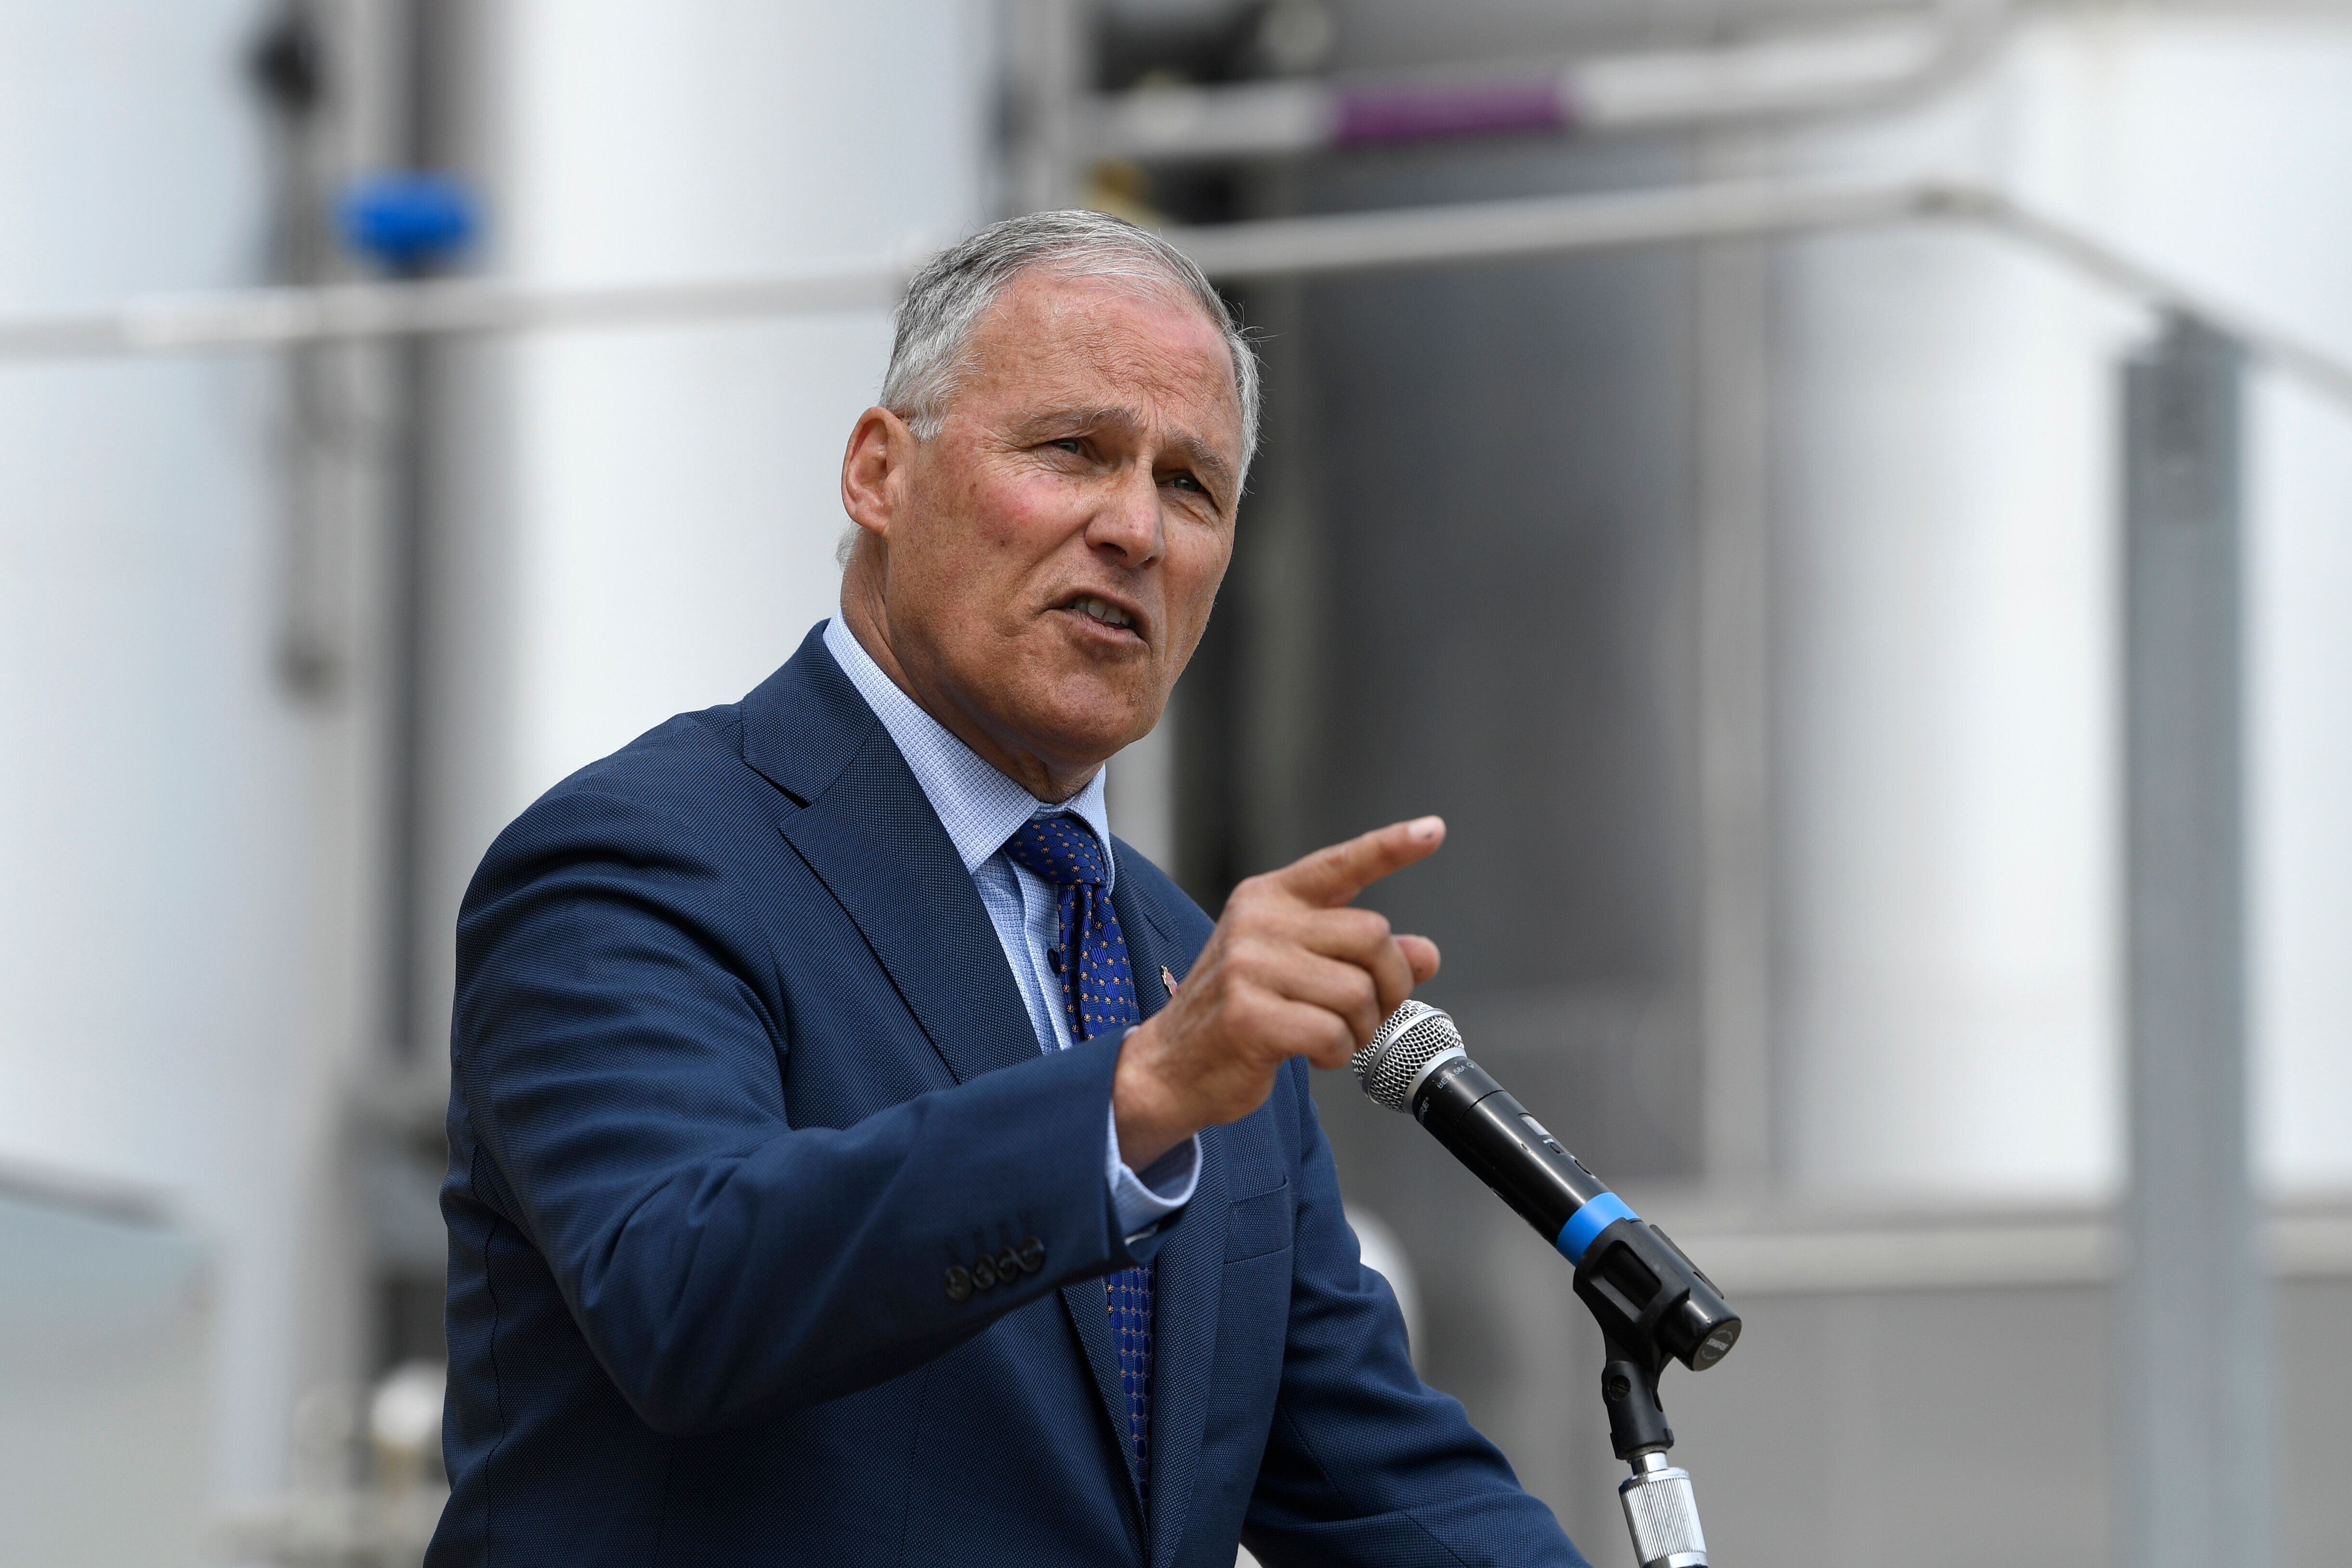 Jay Inslee Calls For Accepting 'Historic Levels' Of Refugees Amid Climate Crisis